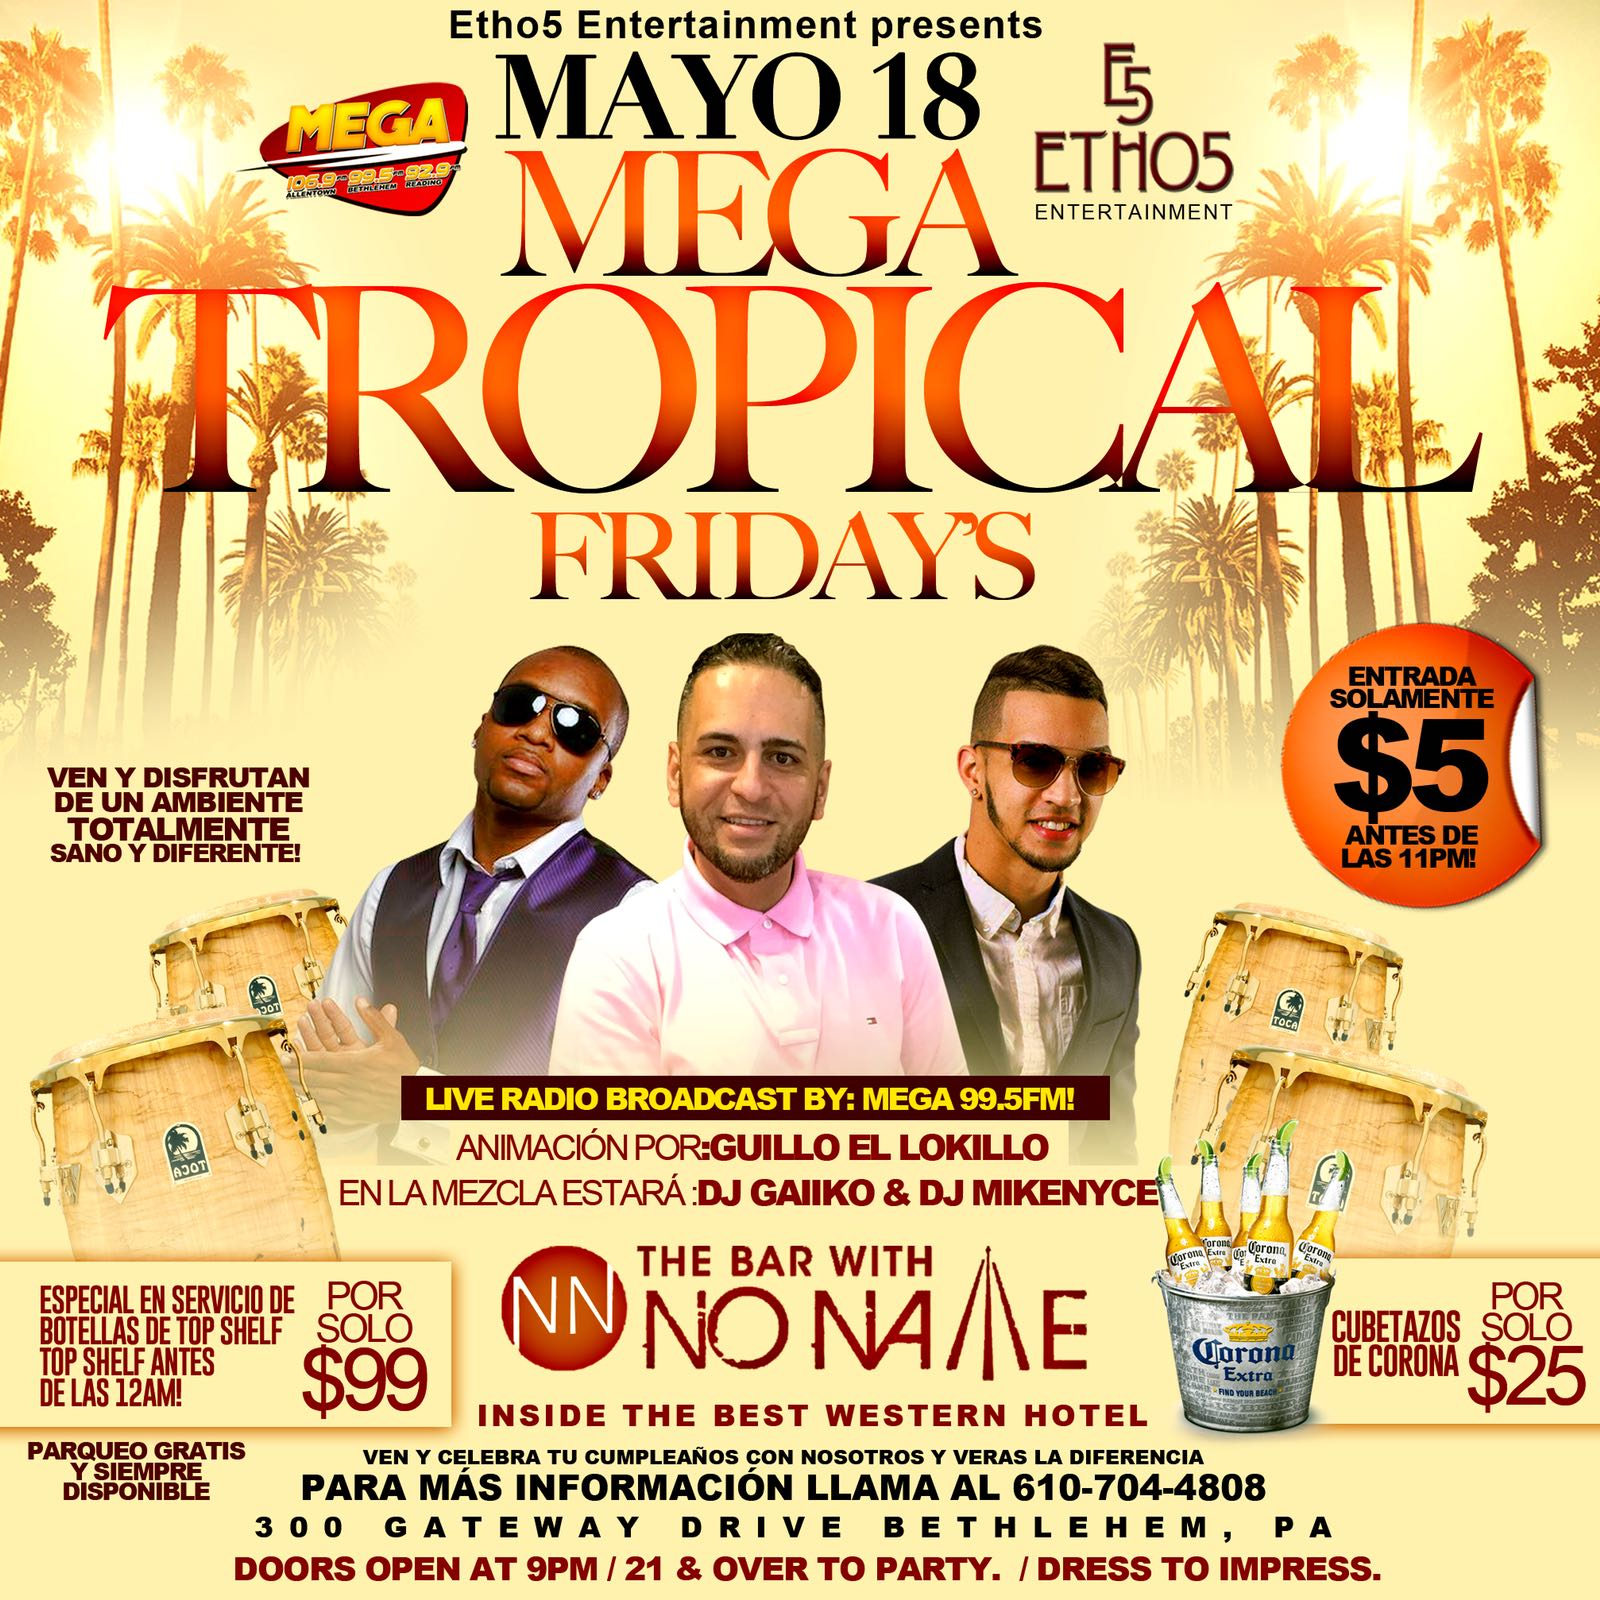 Mayo 18 Tropical Fridays